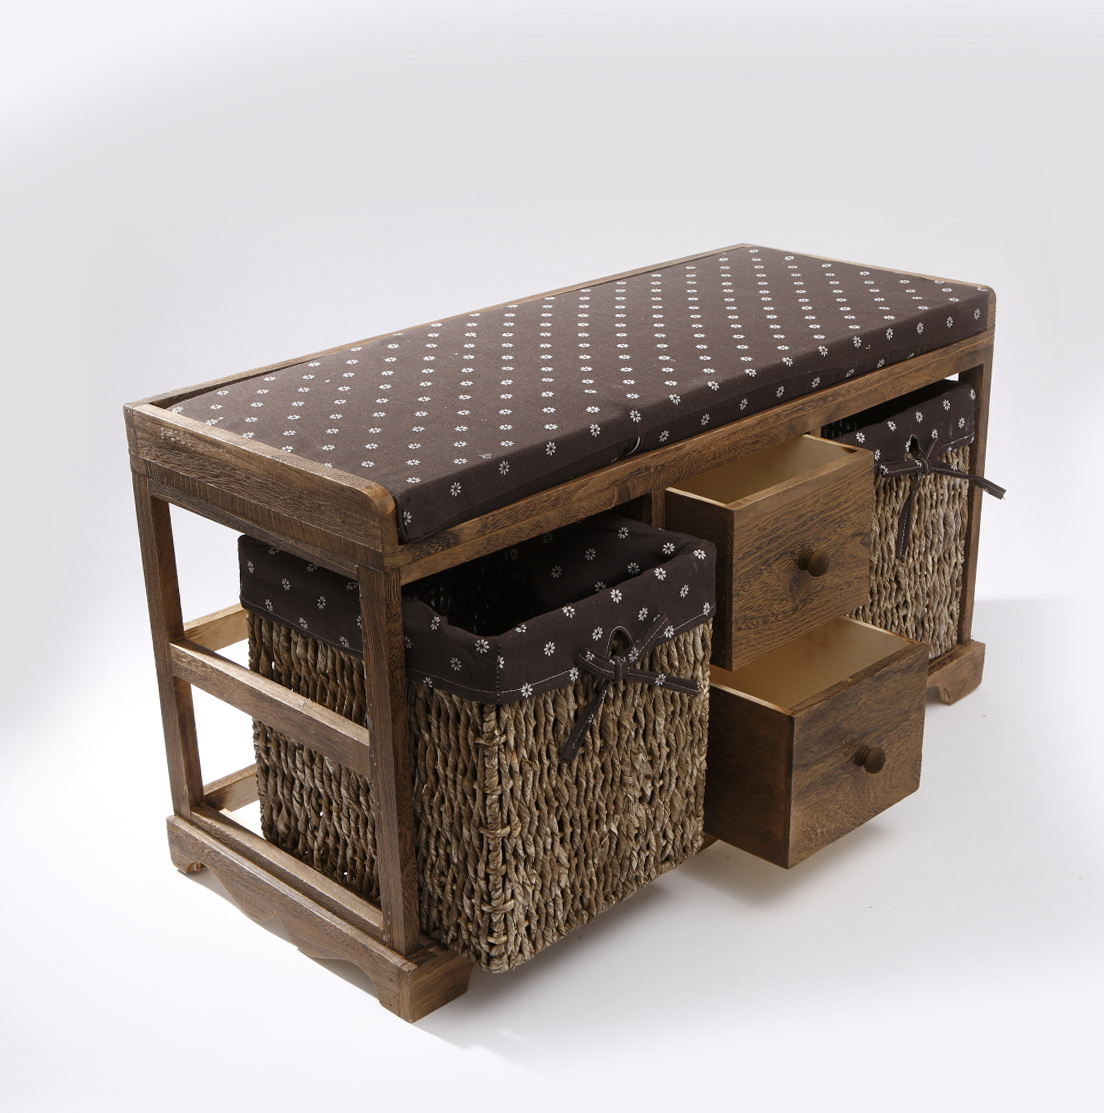 Wooden Storage Bench With Baskets